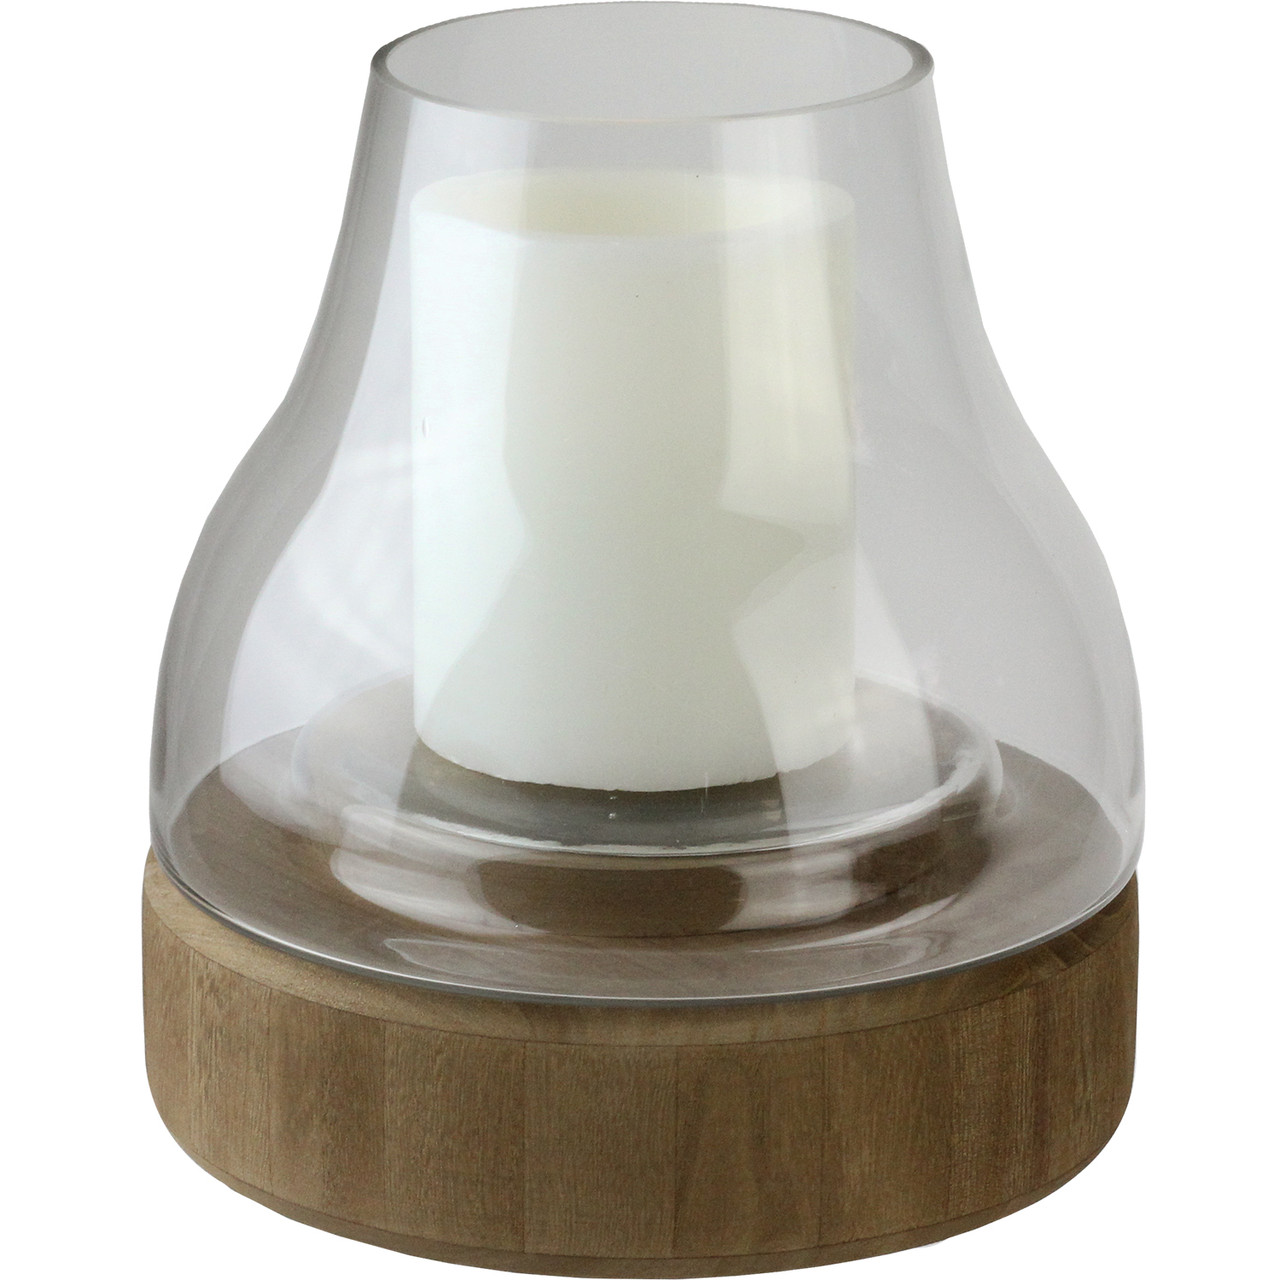 10 25 Transparent Glass Pillar Candle Holder With Wooden Base Christmas Central